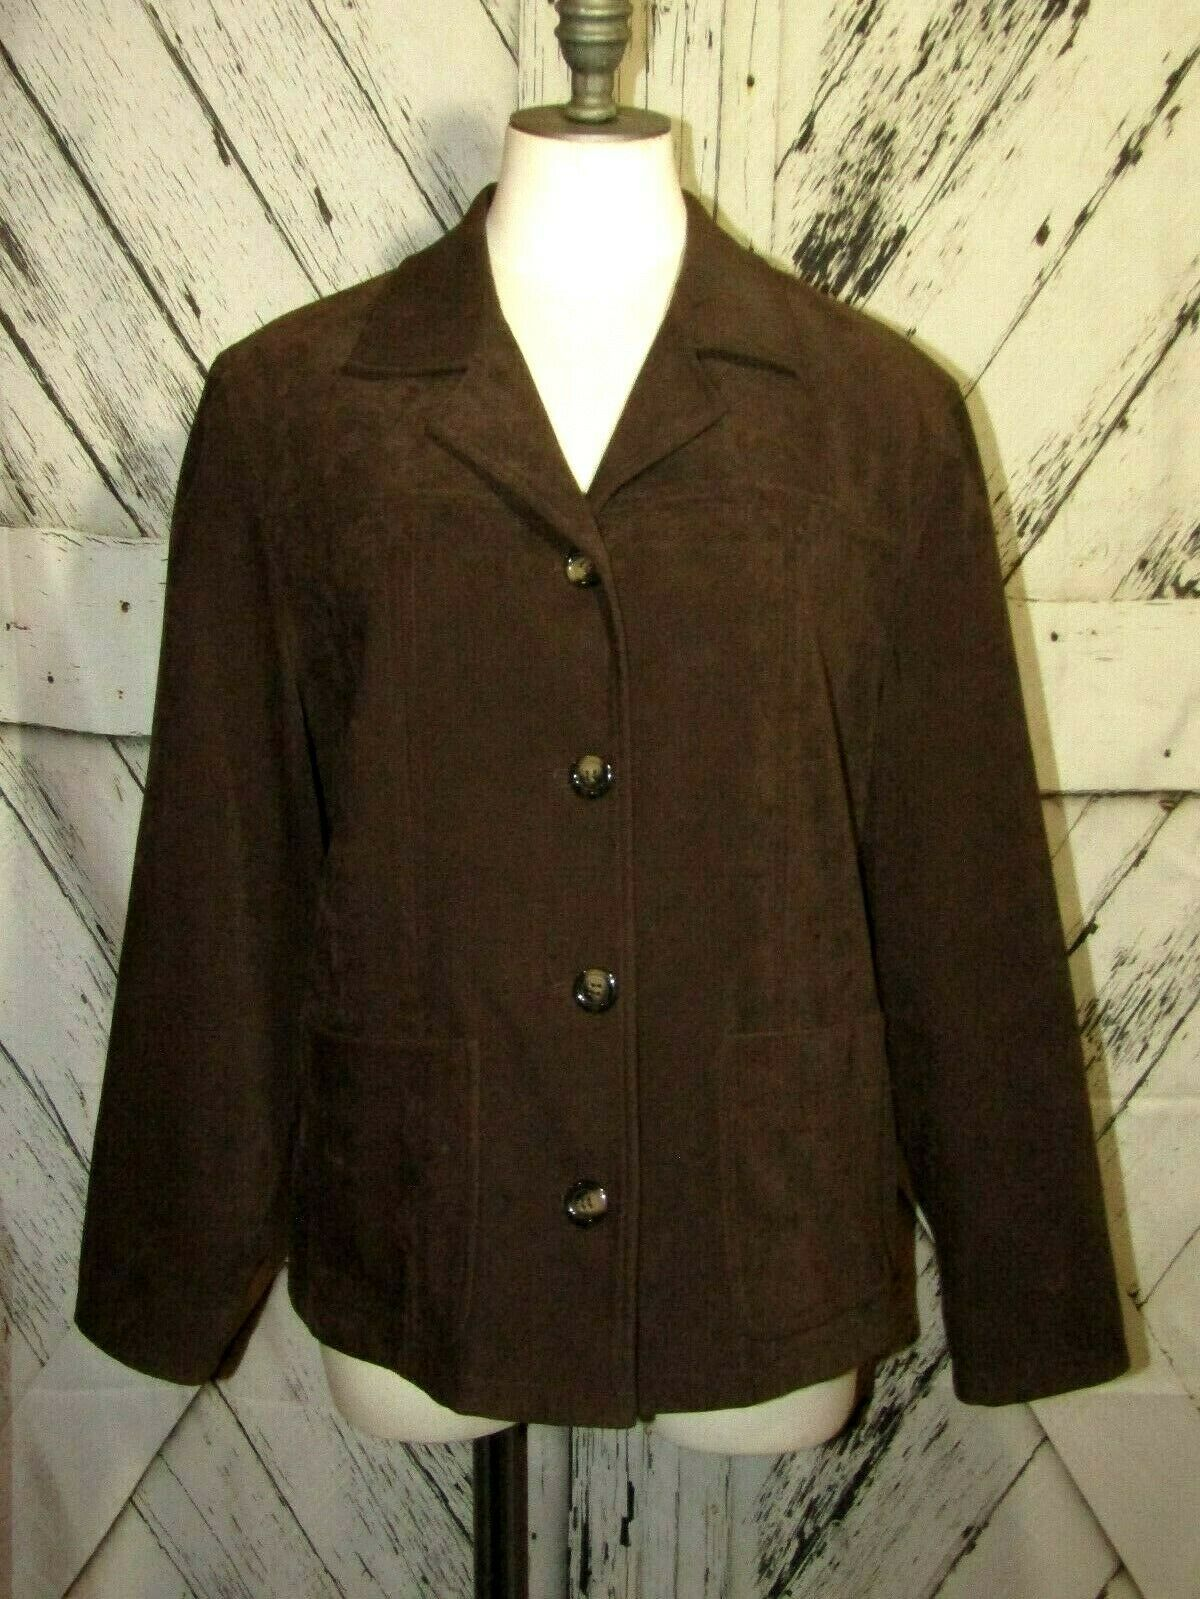 Primary image for Talbots Petites Womens Brown Button Up Blazer Jacket Sz M Professional Business